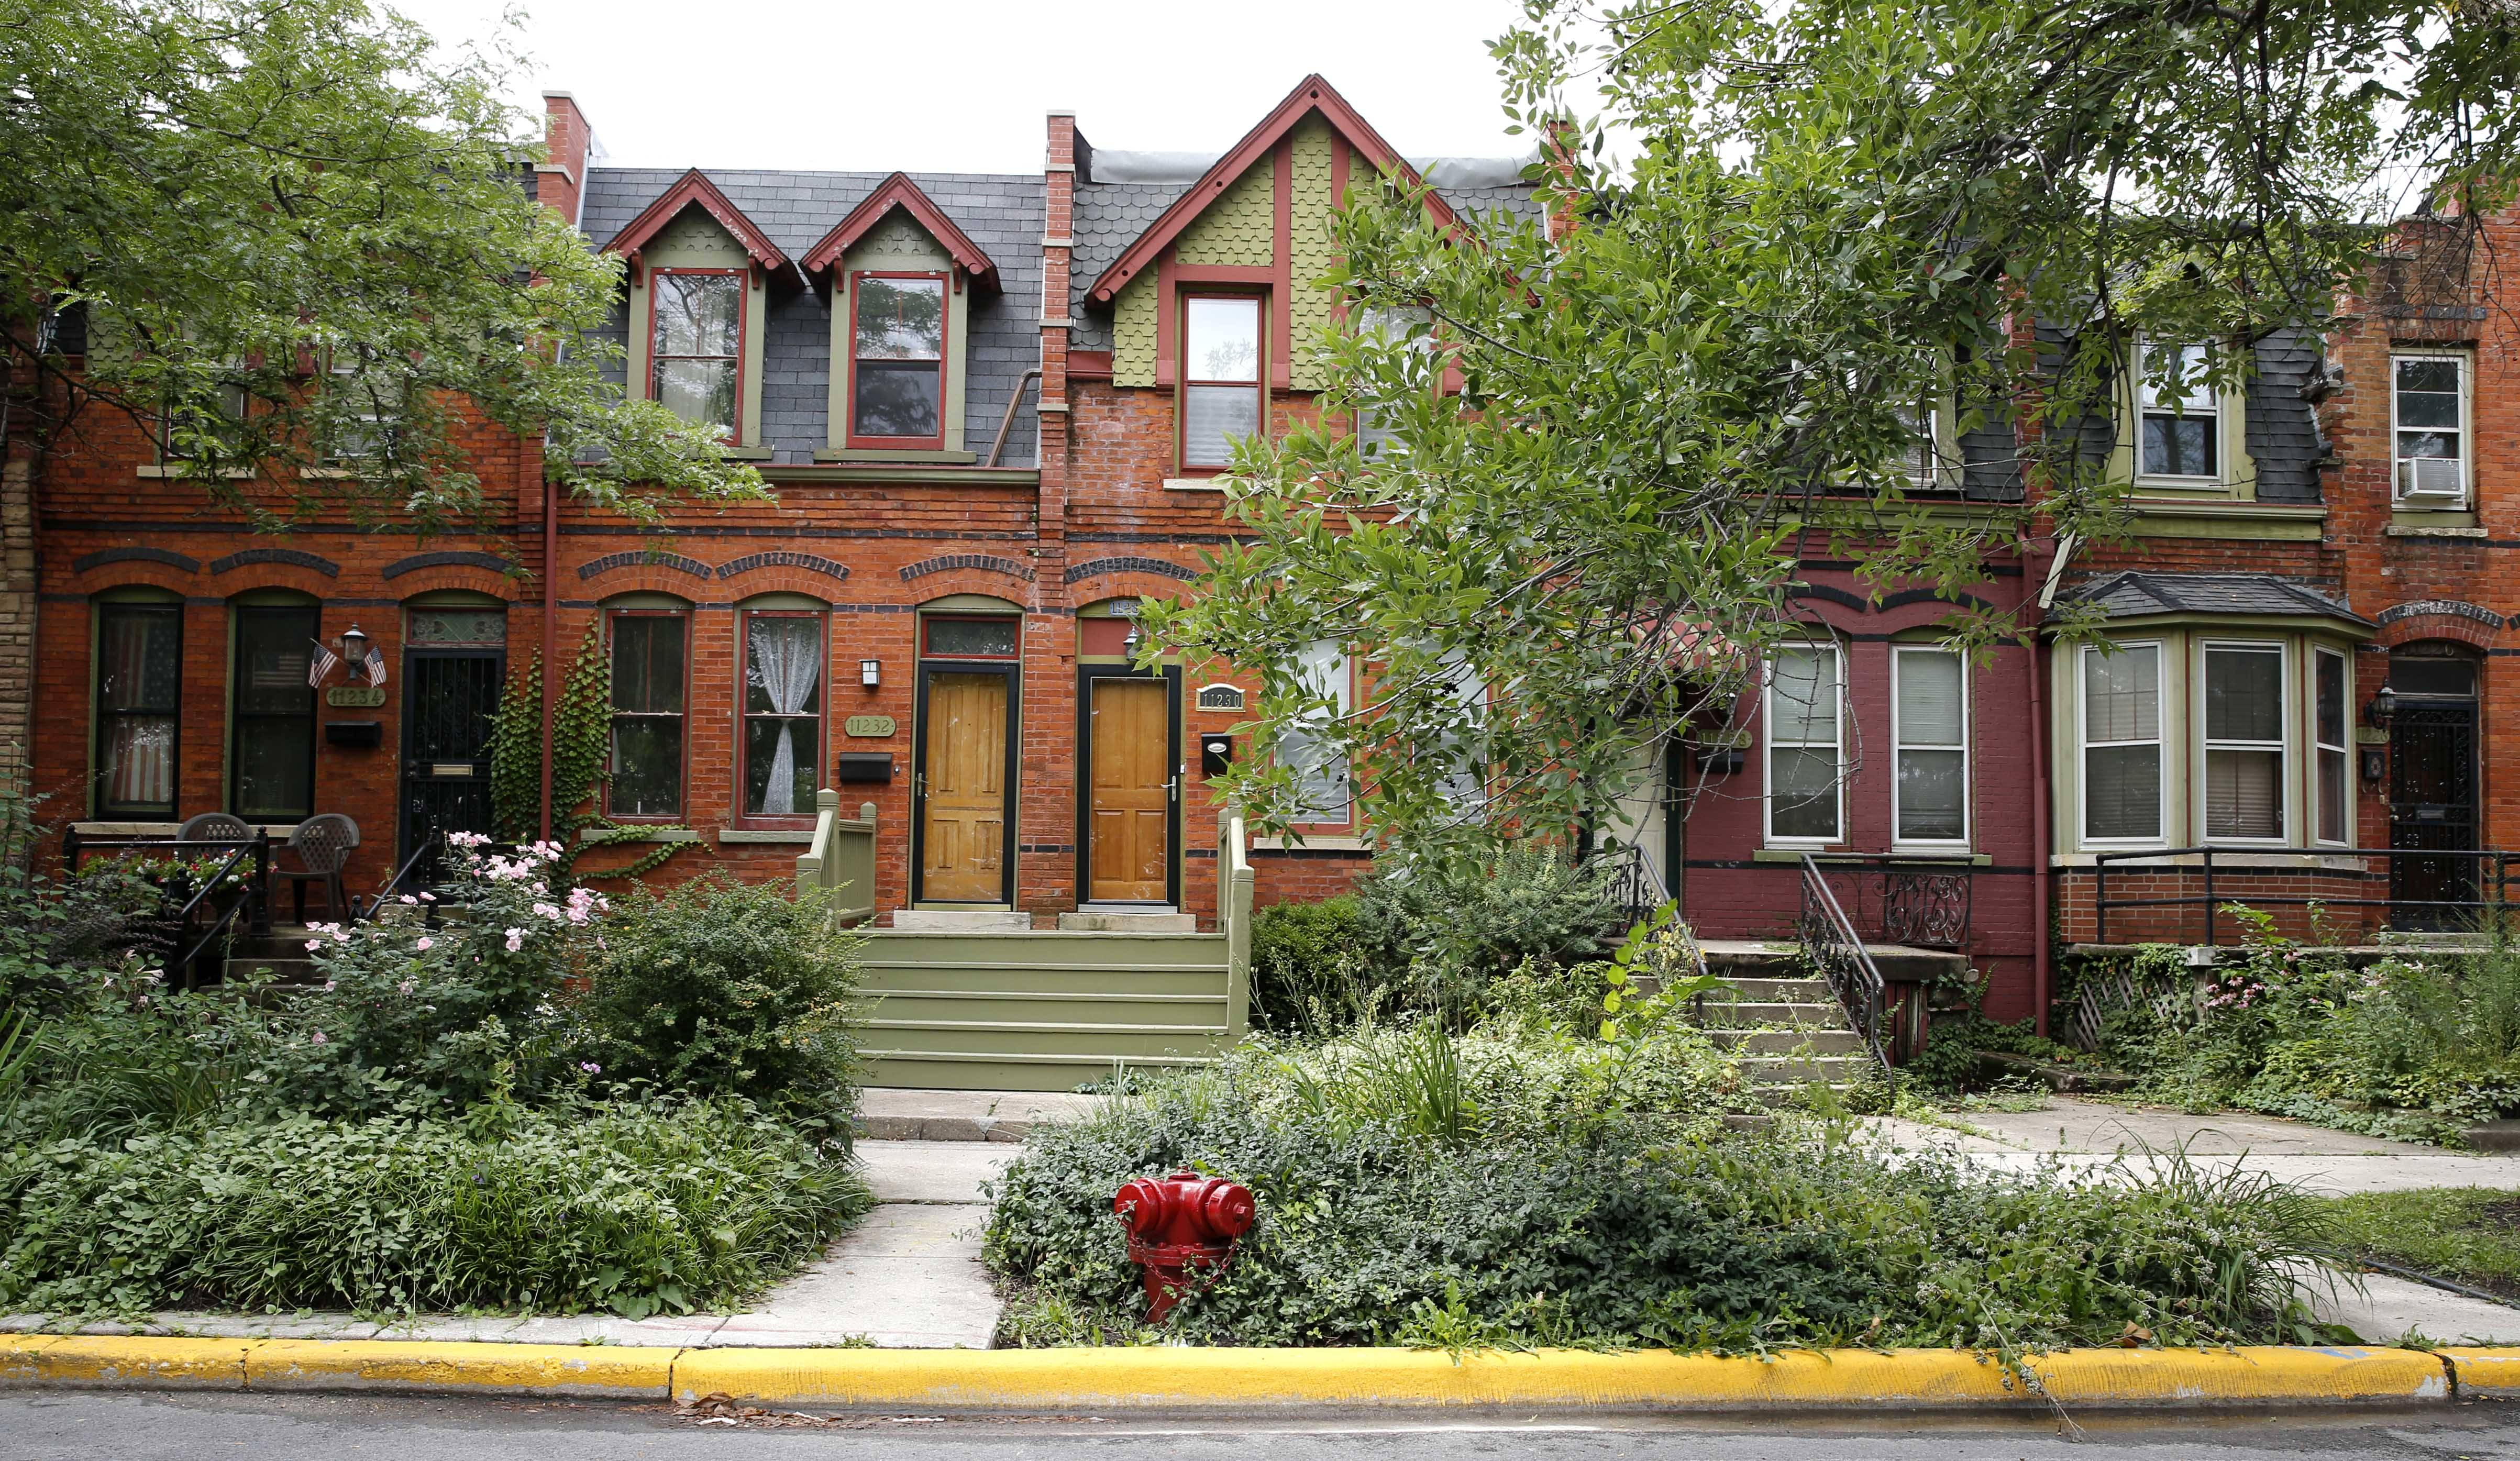 The Pullman neighborhood's ornate brick homes were built in the 1800s by industrialist George Pullman as a blue-collar utopia to house workers from his sleeping-railcar factory in Chicago. National Park Service Director Jonathan B. Jarvis tells The Associated Press that he plans to recommend that the Interior Secretary ask President Obama to declare the southeast Chicago neighborhood a unit of the national park system.